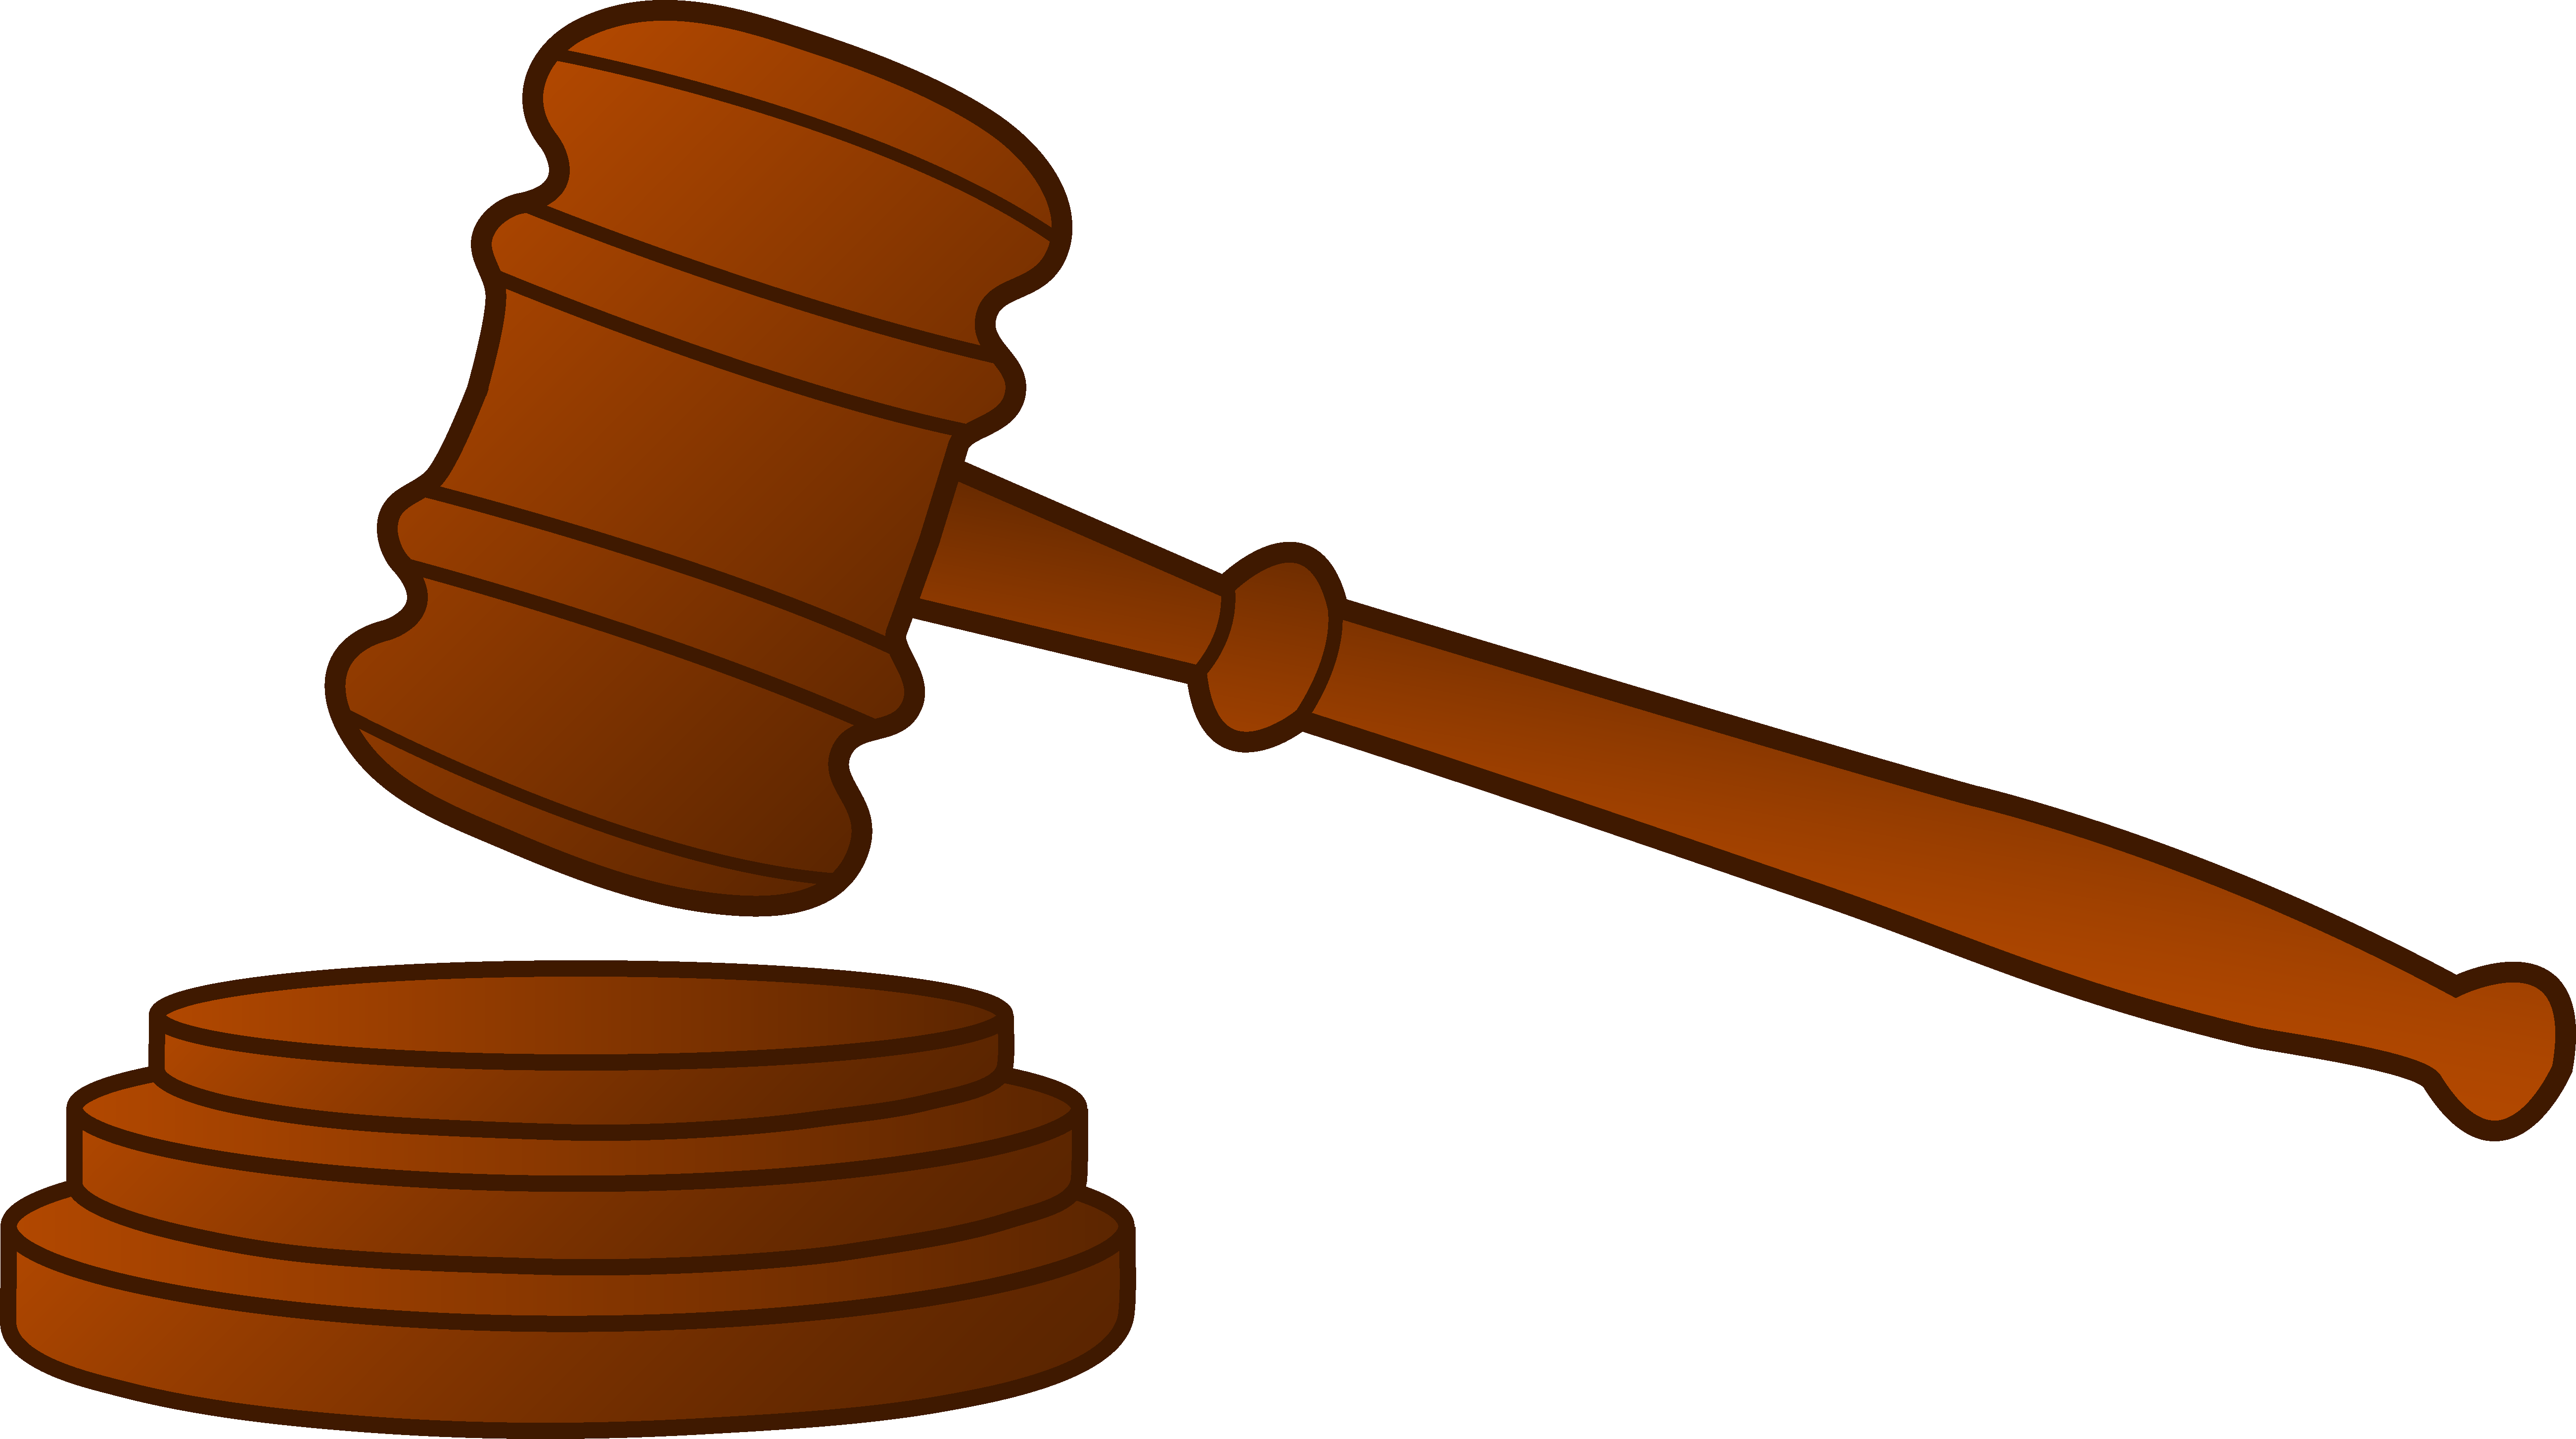 Court clipart. Wooden gavel free clip